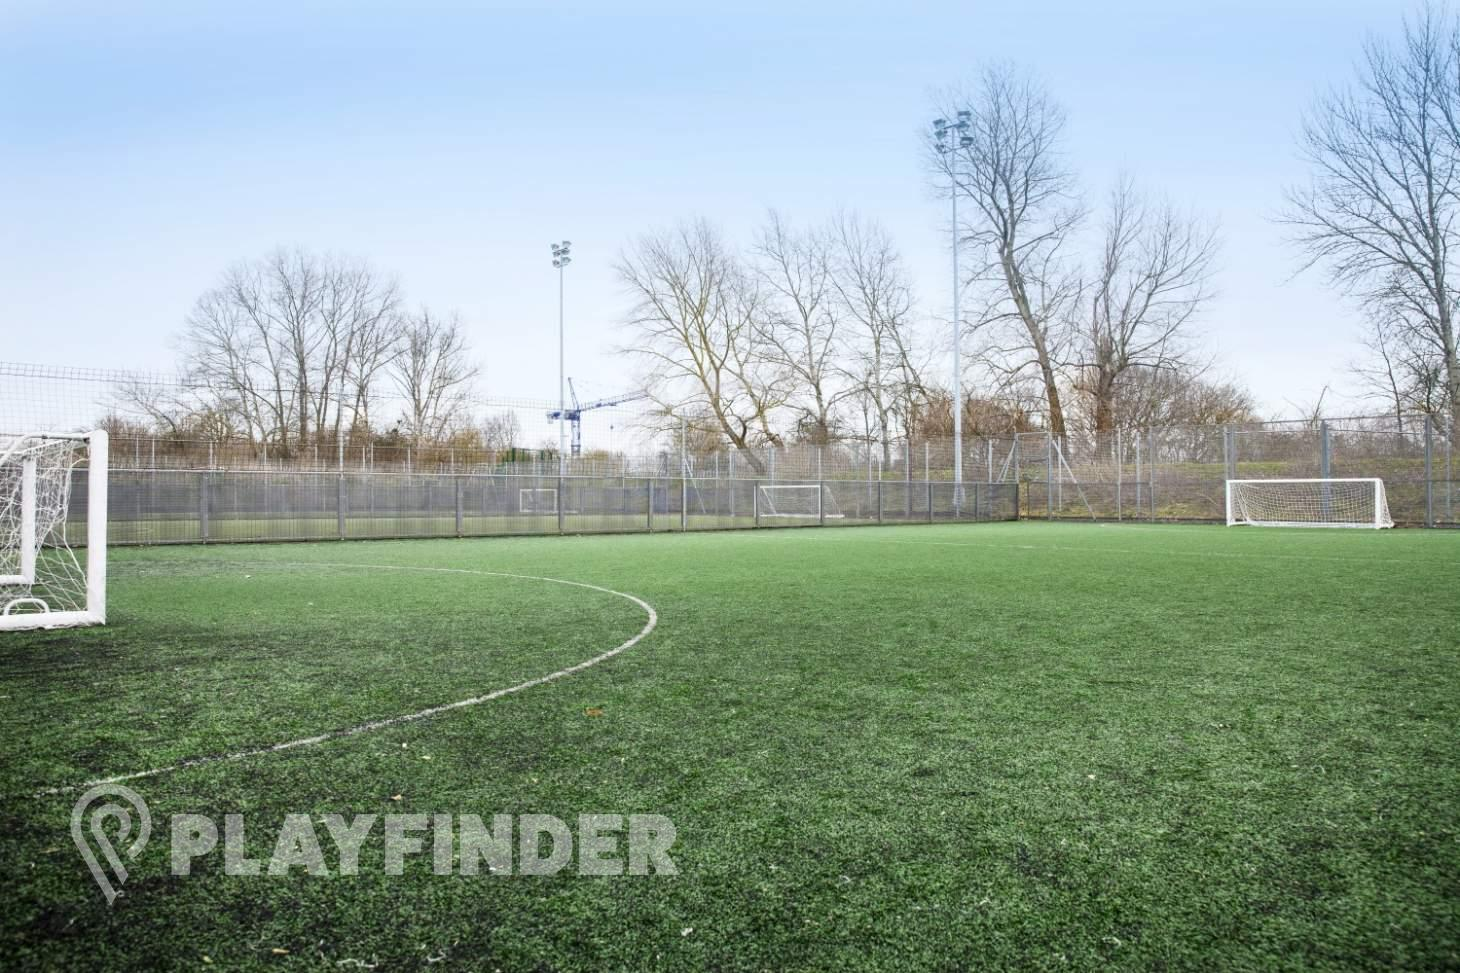 Gosling Sports Park 5 a side | 3G Astroturf football pitch